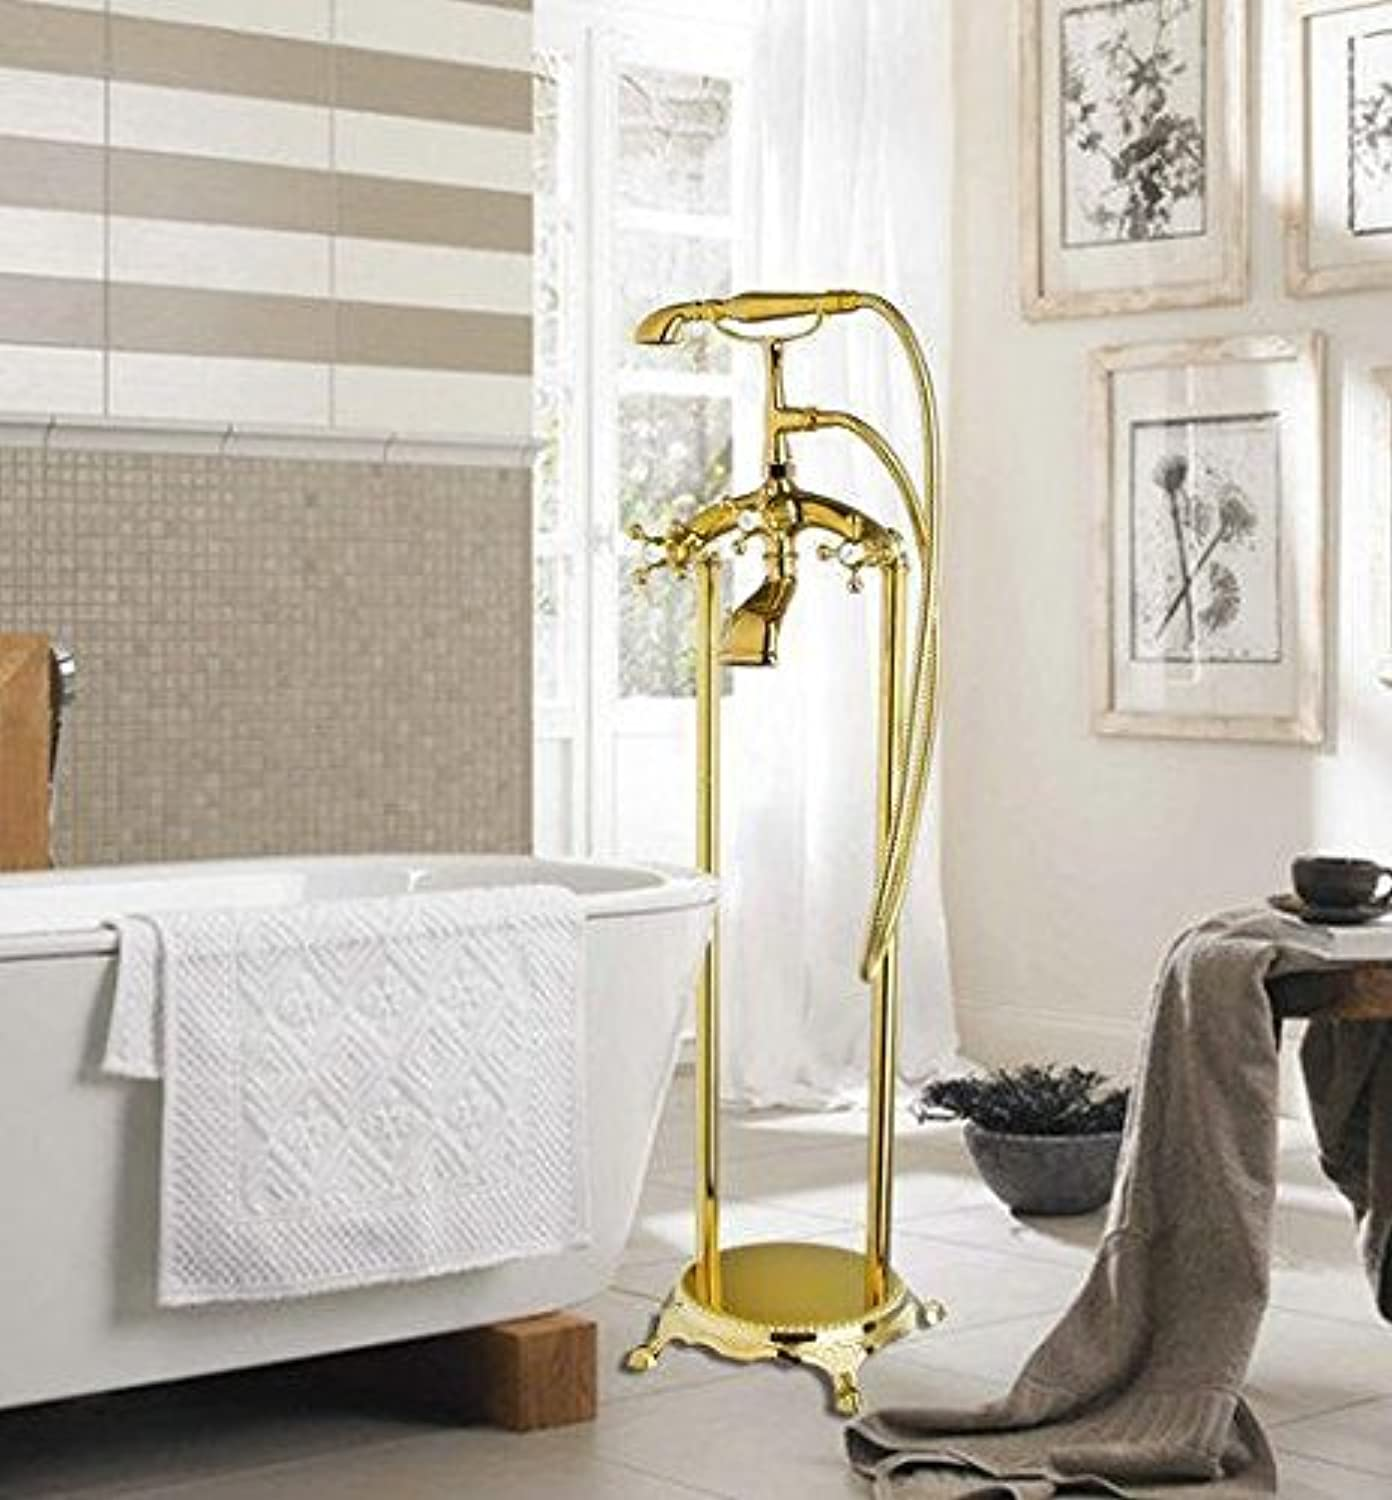 Shivers Bathtub Torneira Bathroom Double Handles Golden 51004 Floor Mounted Shower Set Vessel Vanity Basin Sink Faucet,Mixer Tap,Gelb